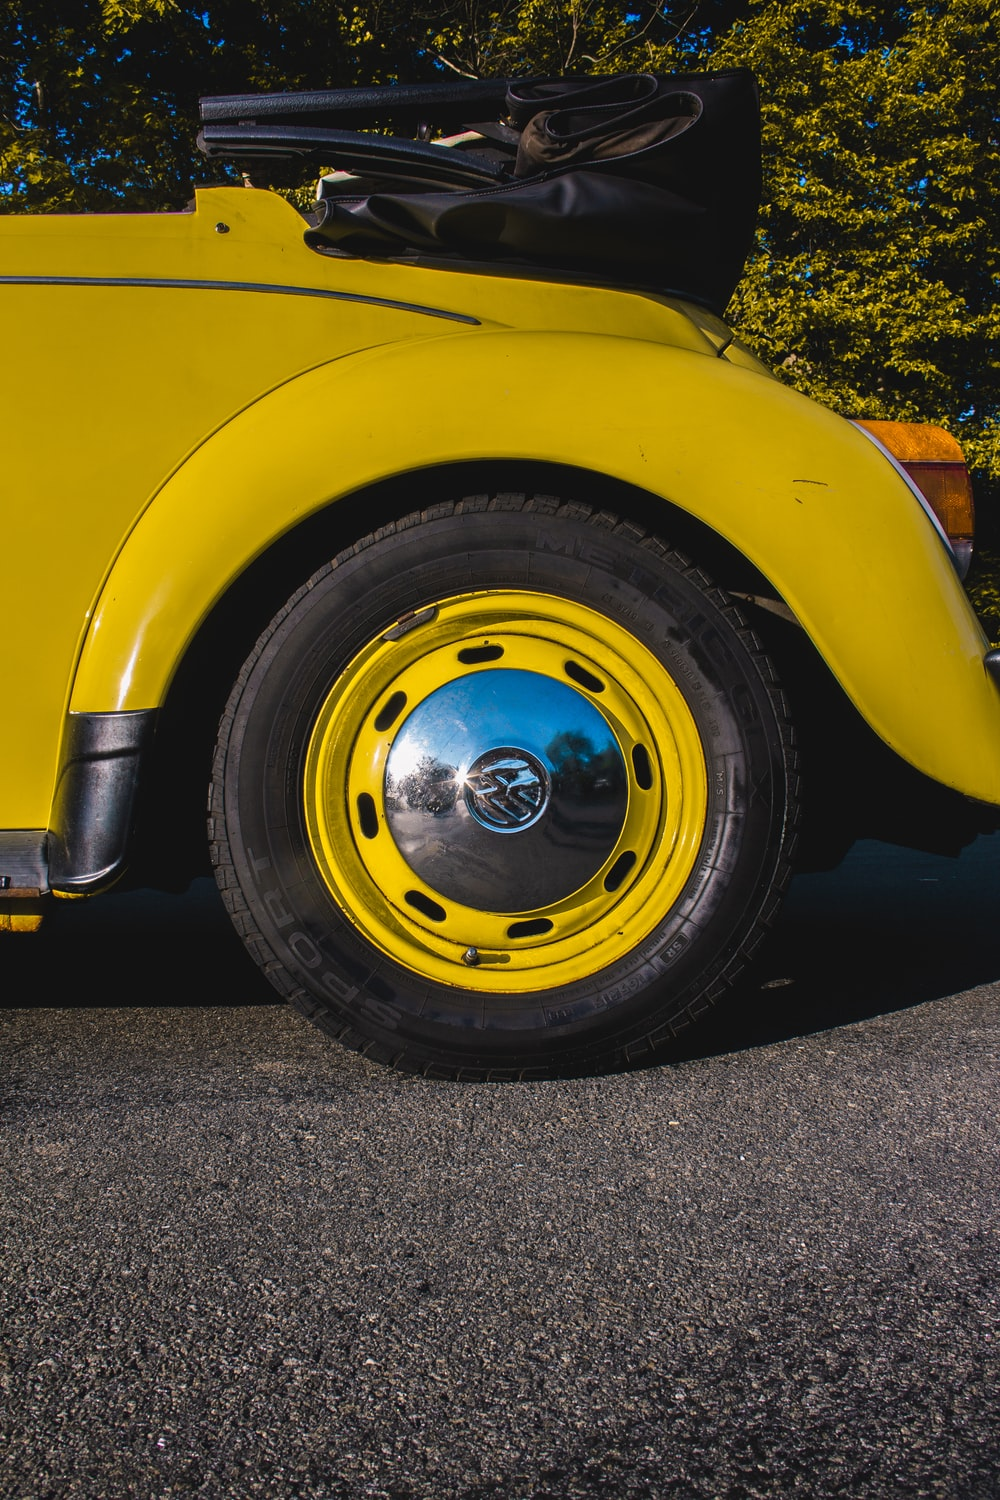 yellow car with gray wheel and tire